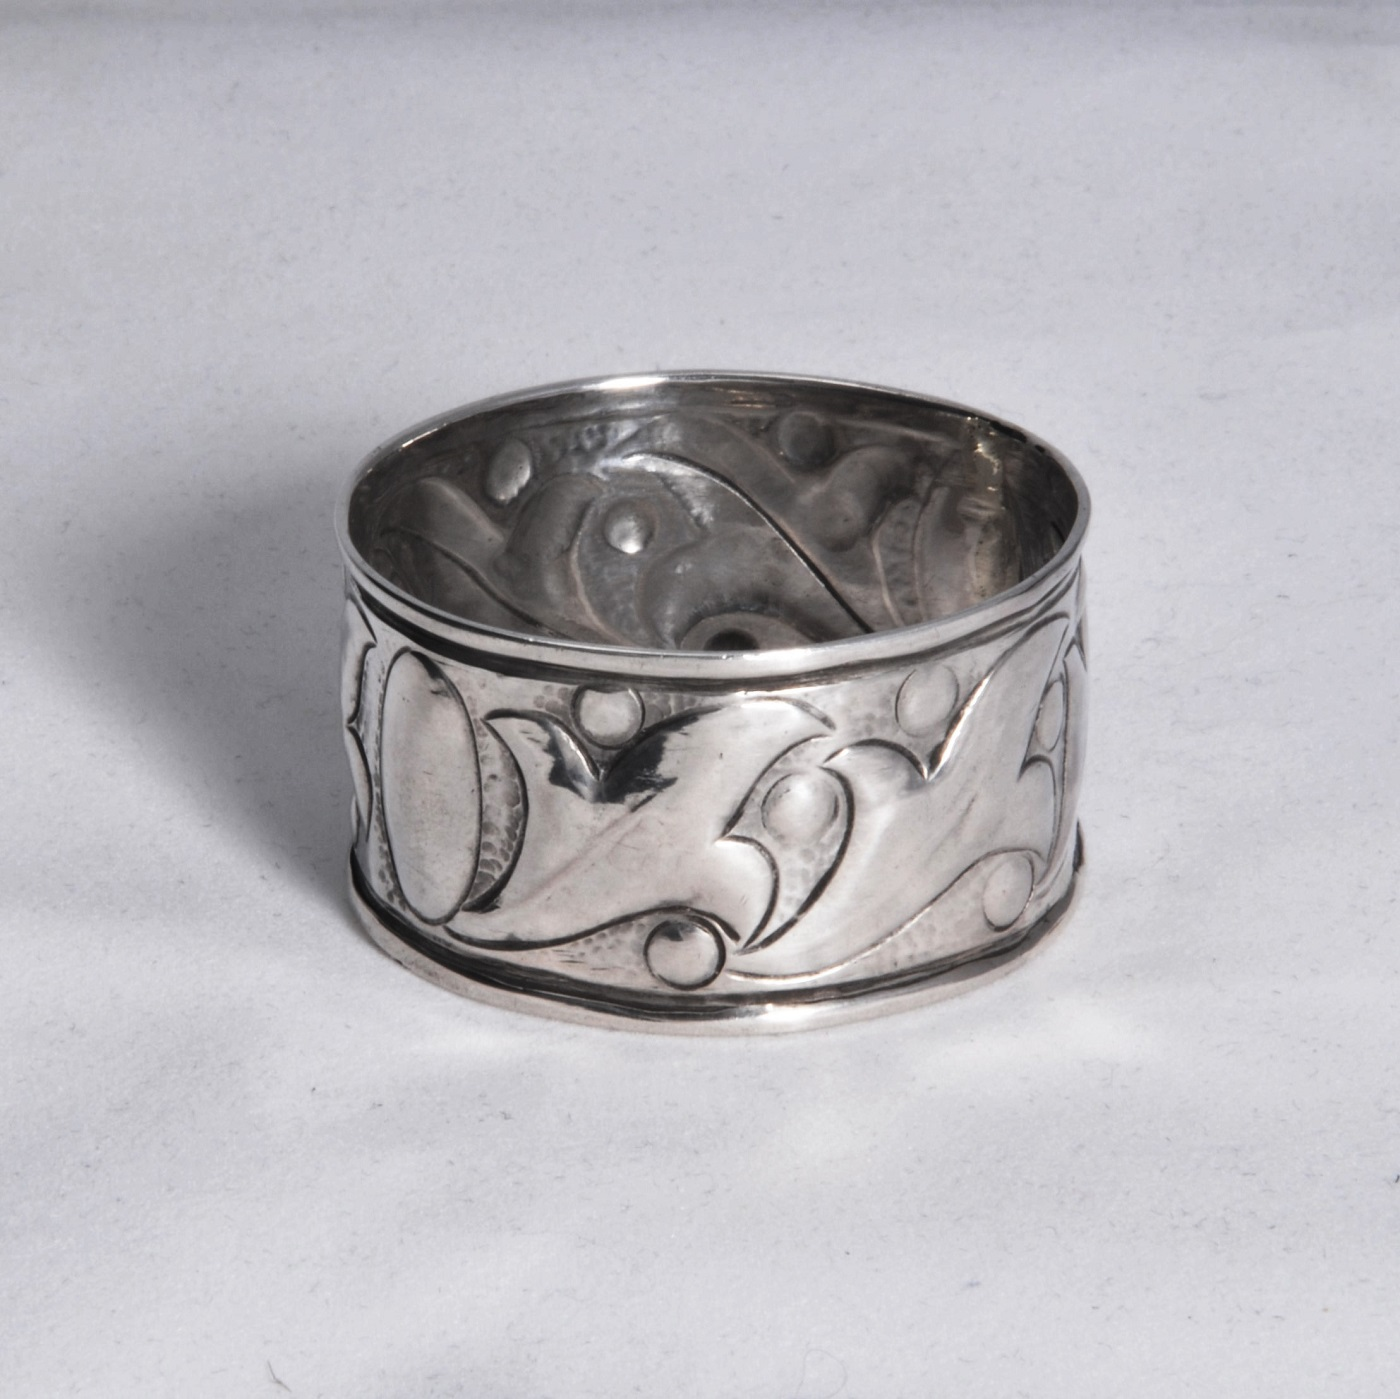 Keswick School of Industrial Arts napkin ring